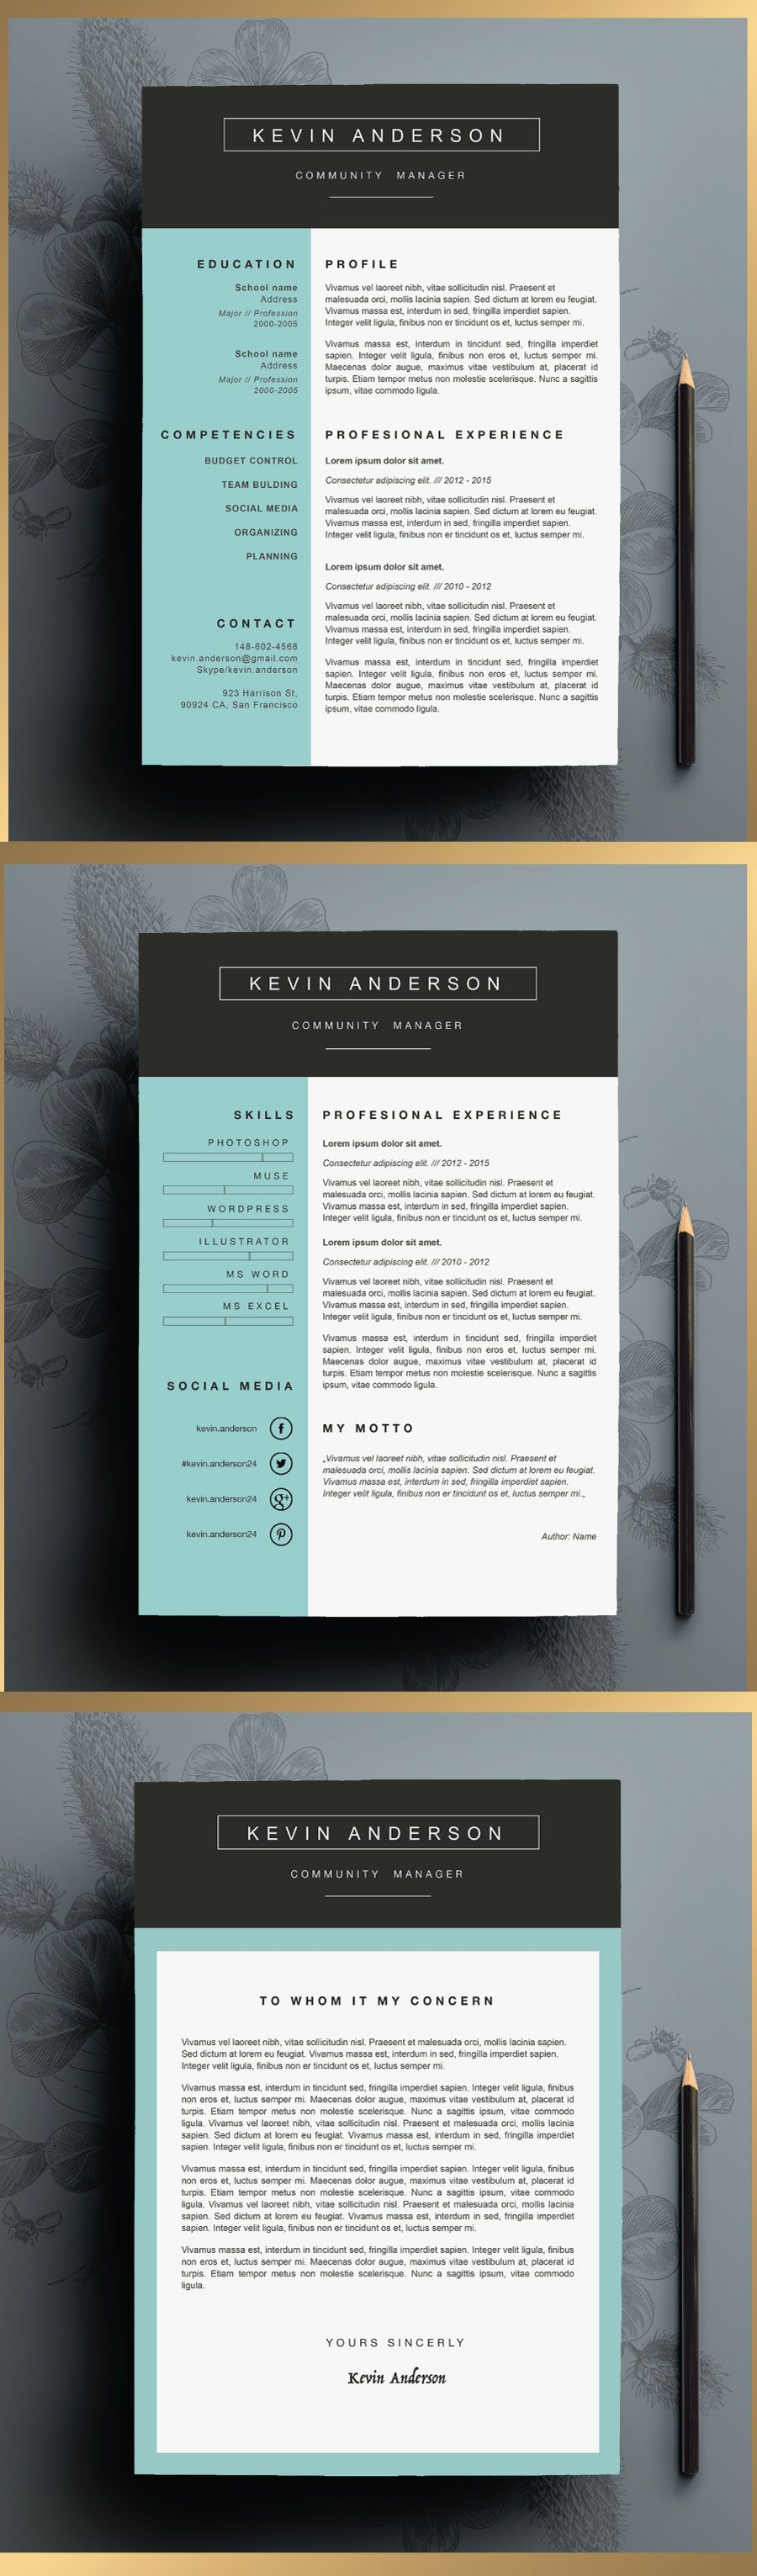 stylish resume template editable in ms word by cvdesign  you can find us on etsy   u2665